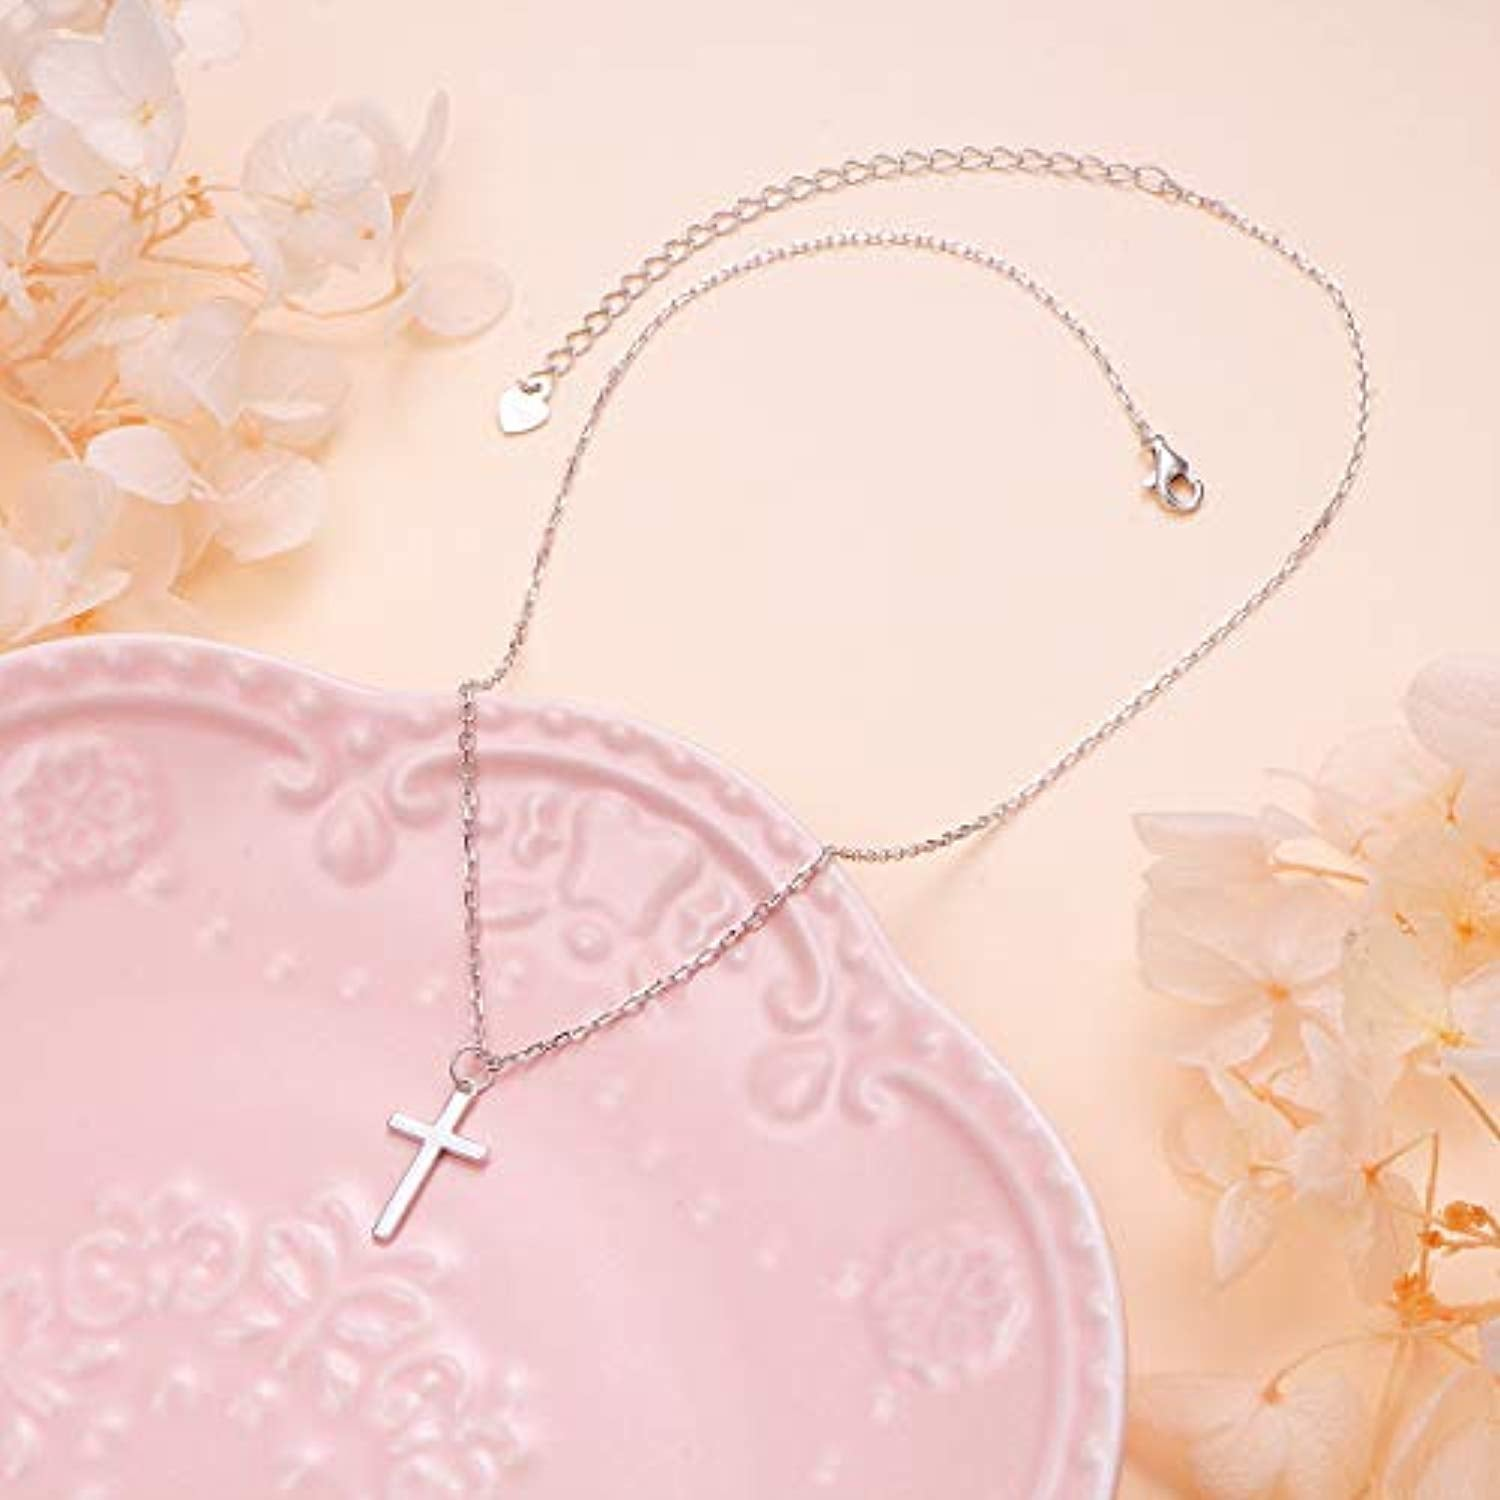 S925 Sterling Silver Small Cross Pendant Necklace